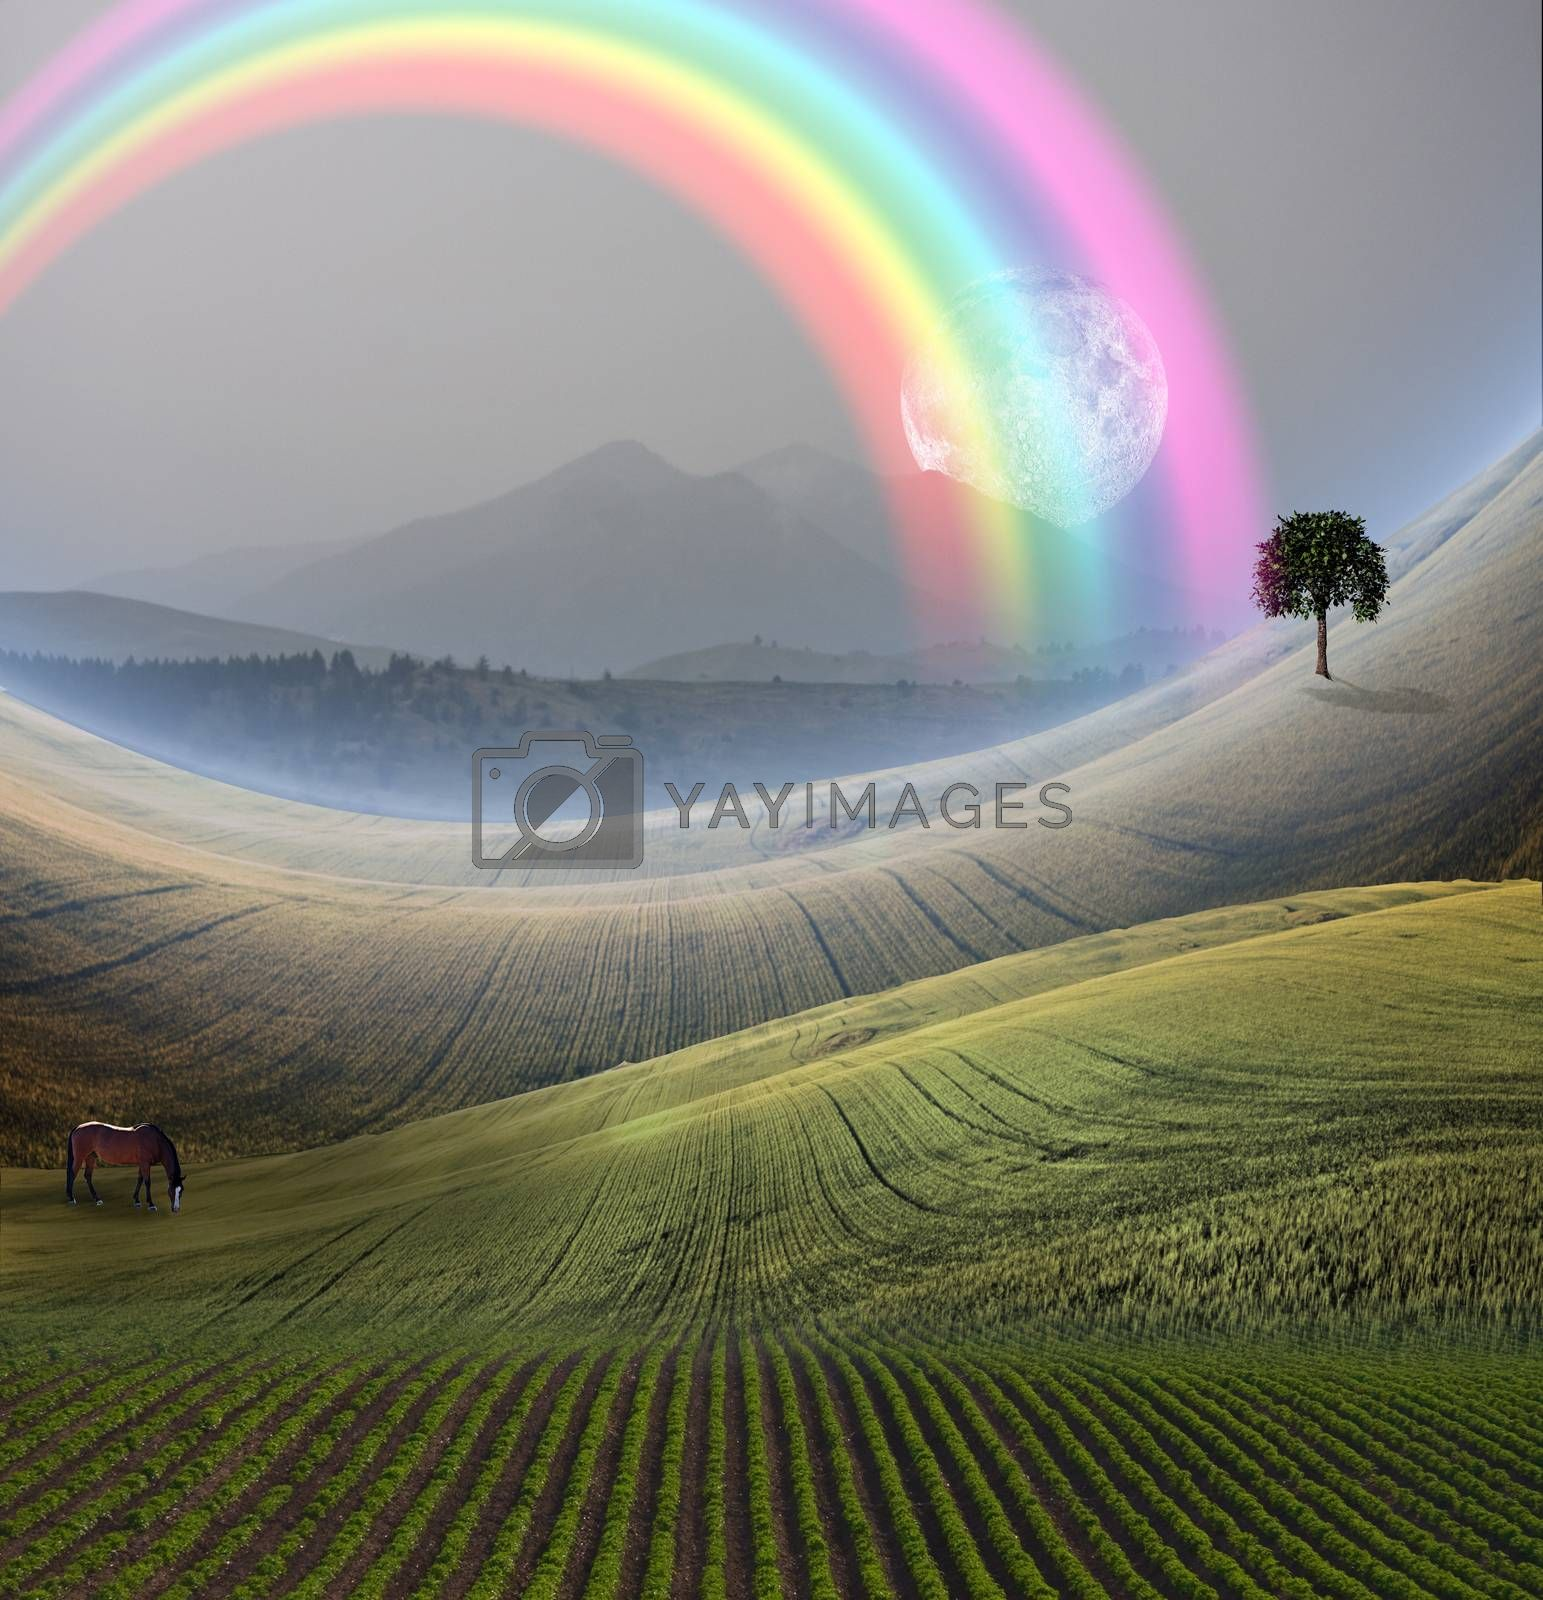 Peaceful Landscape with Mountain and rainbow. Giant moon rises at the horizon. Horse grazes in the field